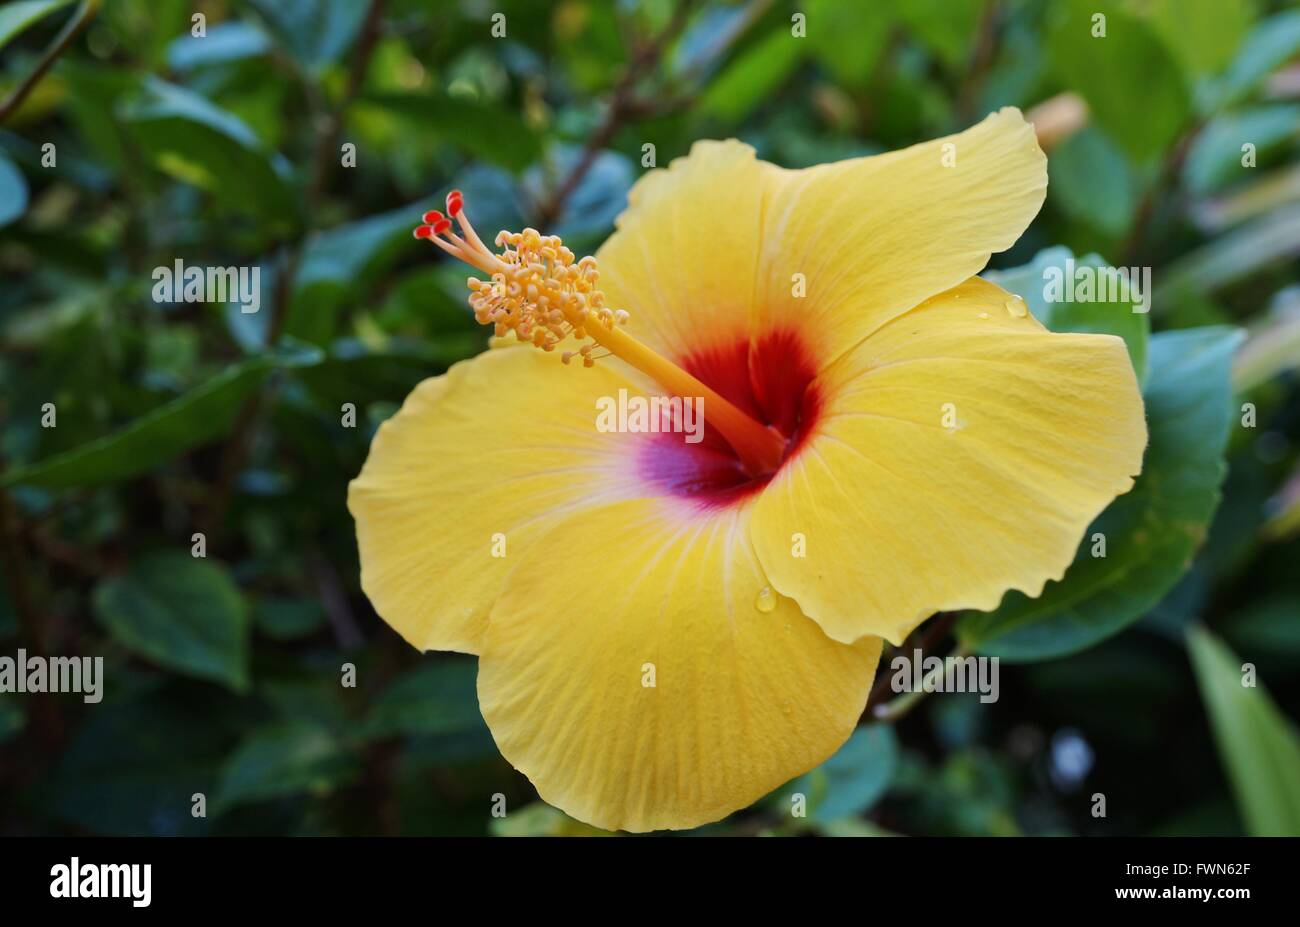 Yellow hibiscus flower with long red and yellow stamen stock photo yellow hibiscus flower with long red and yellow stamen mightylinksfo